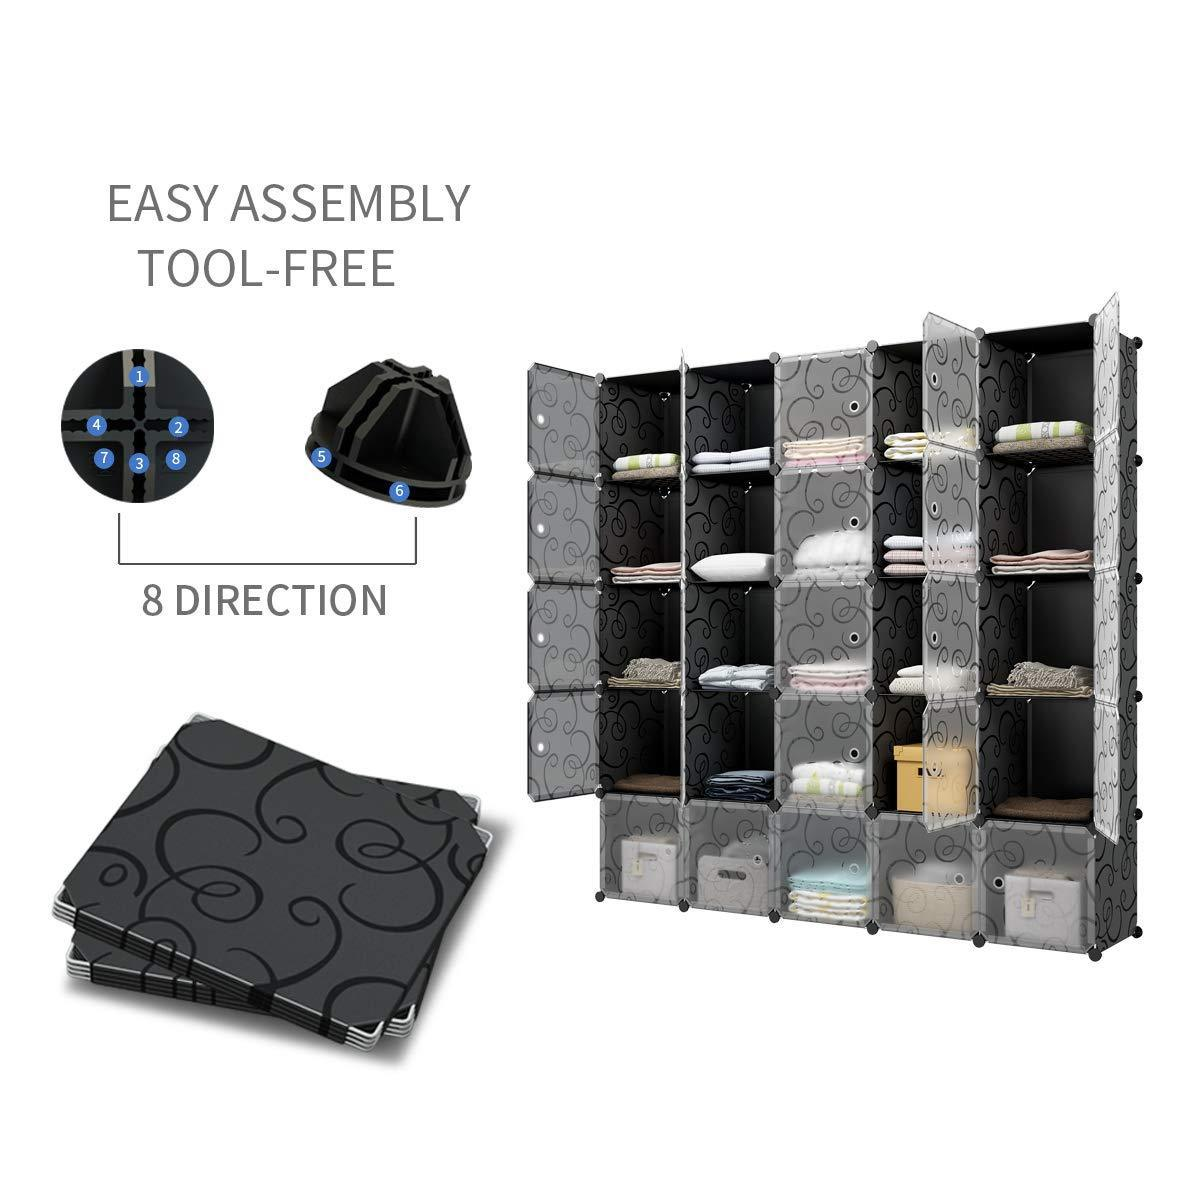 Top kousi cube organizer storage cubes organizers and storage storage cube cube storage shelves cubby shelving storage cabinet toy organizer cabinet black 25 cubes